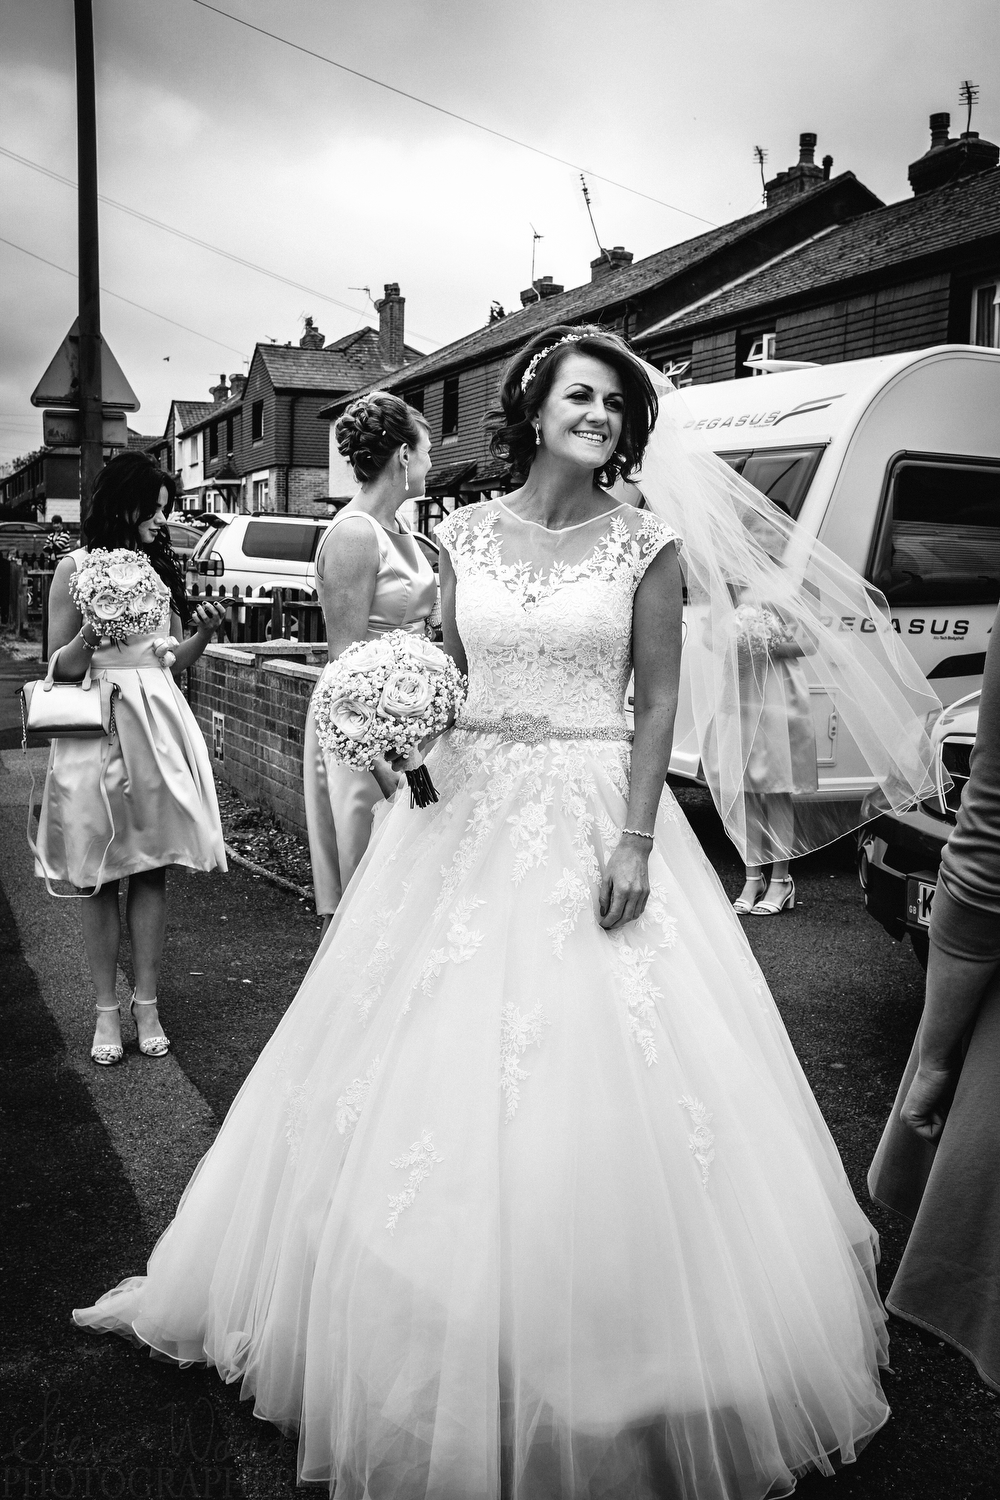 Steve Wood Wedding photographer Bexley.JPG